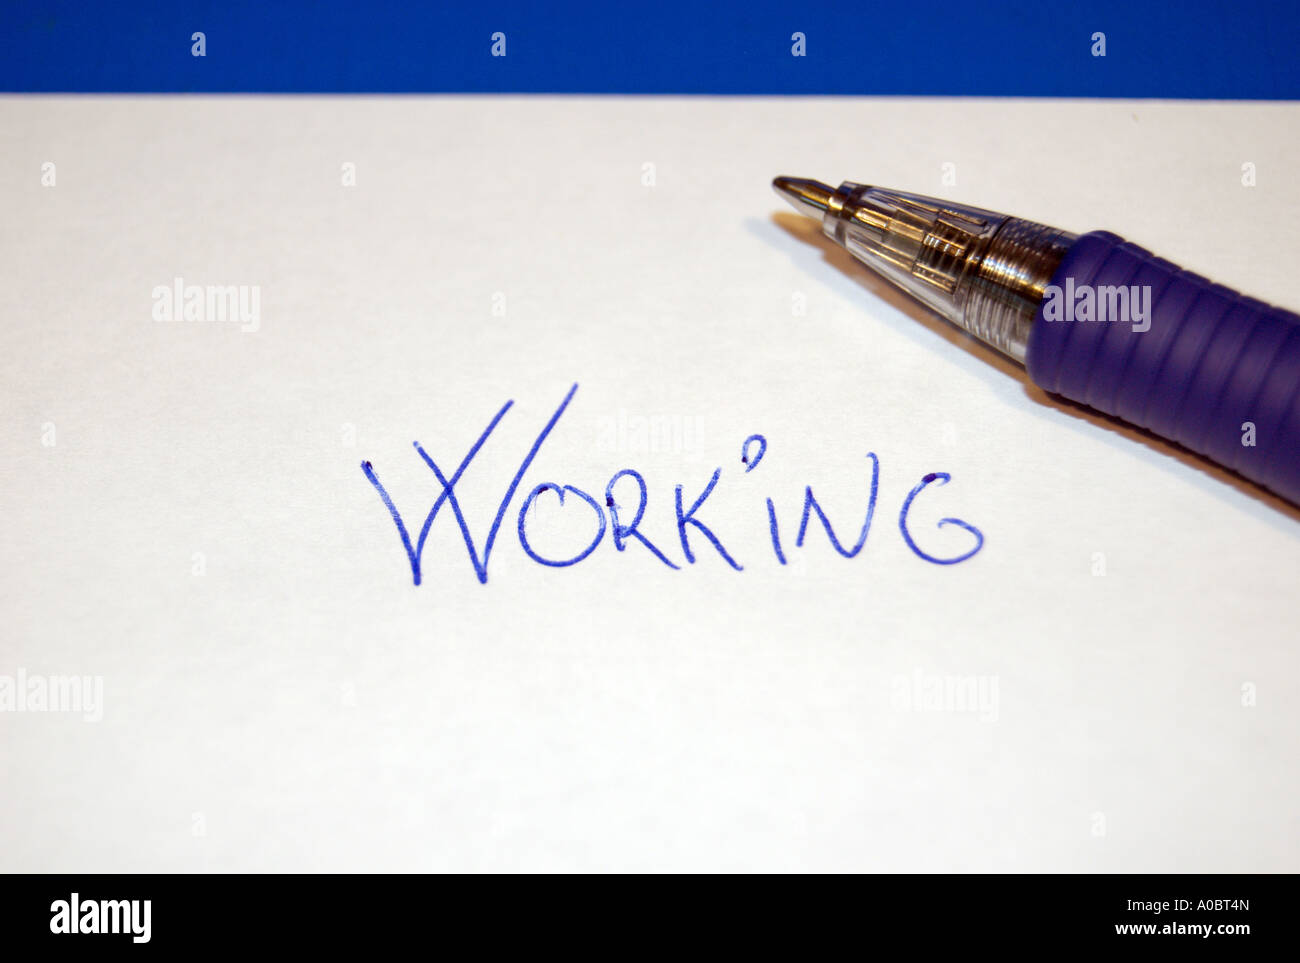 Concept of working formed by letters and a pen Captured in Oslo Norway October 2006 Stock Photo